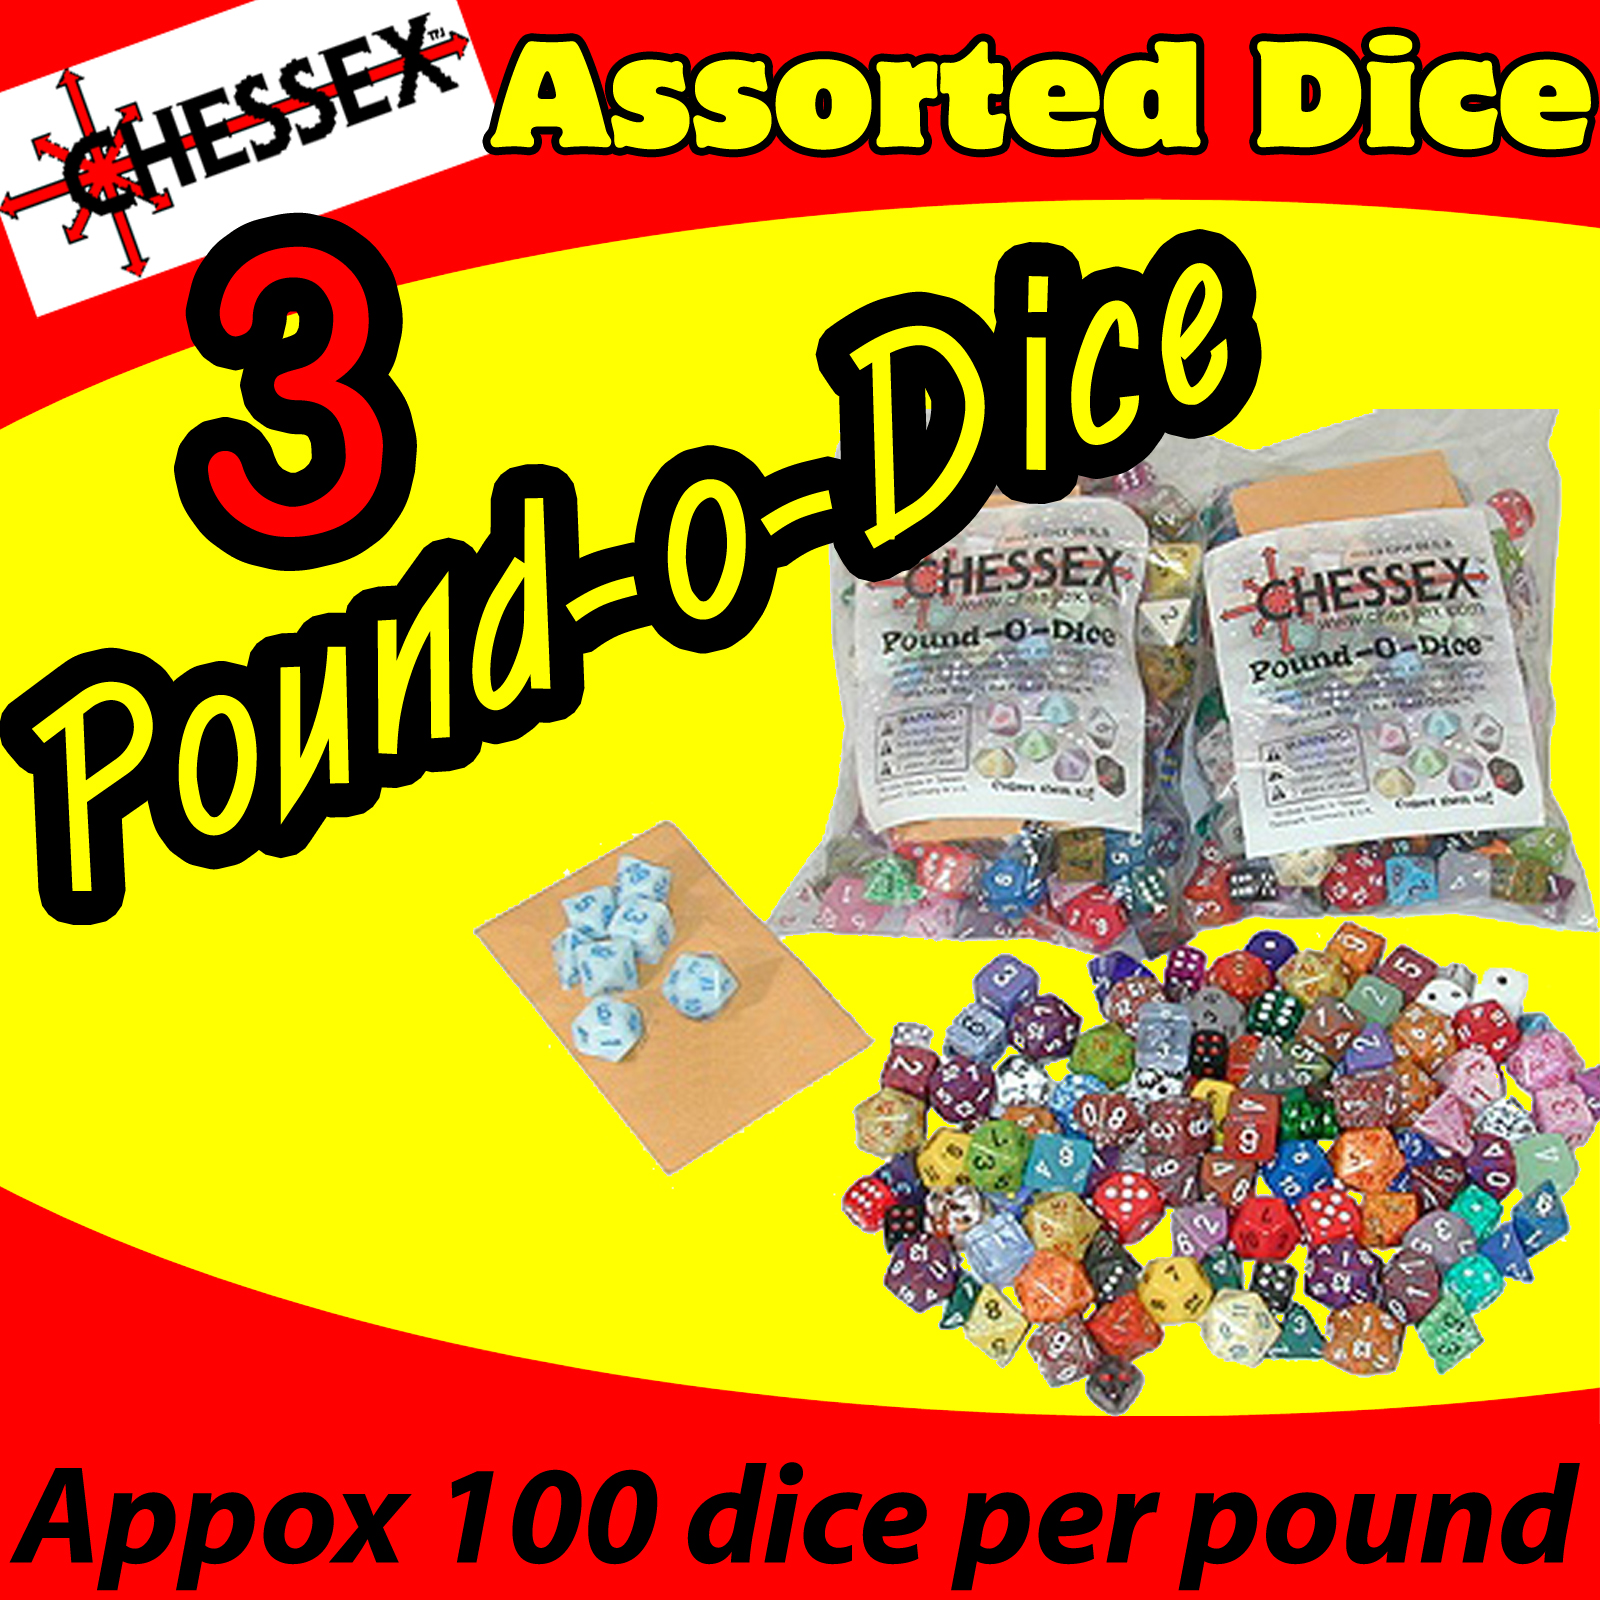 Chessex Pound O Dice (3 lbs) USA SHIPPING - Click Image to Close